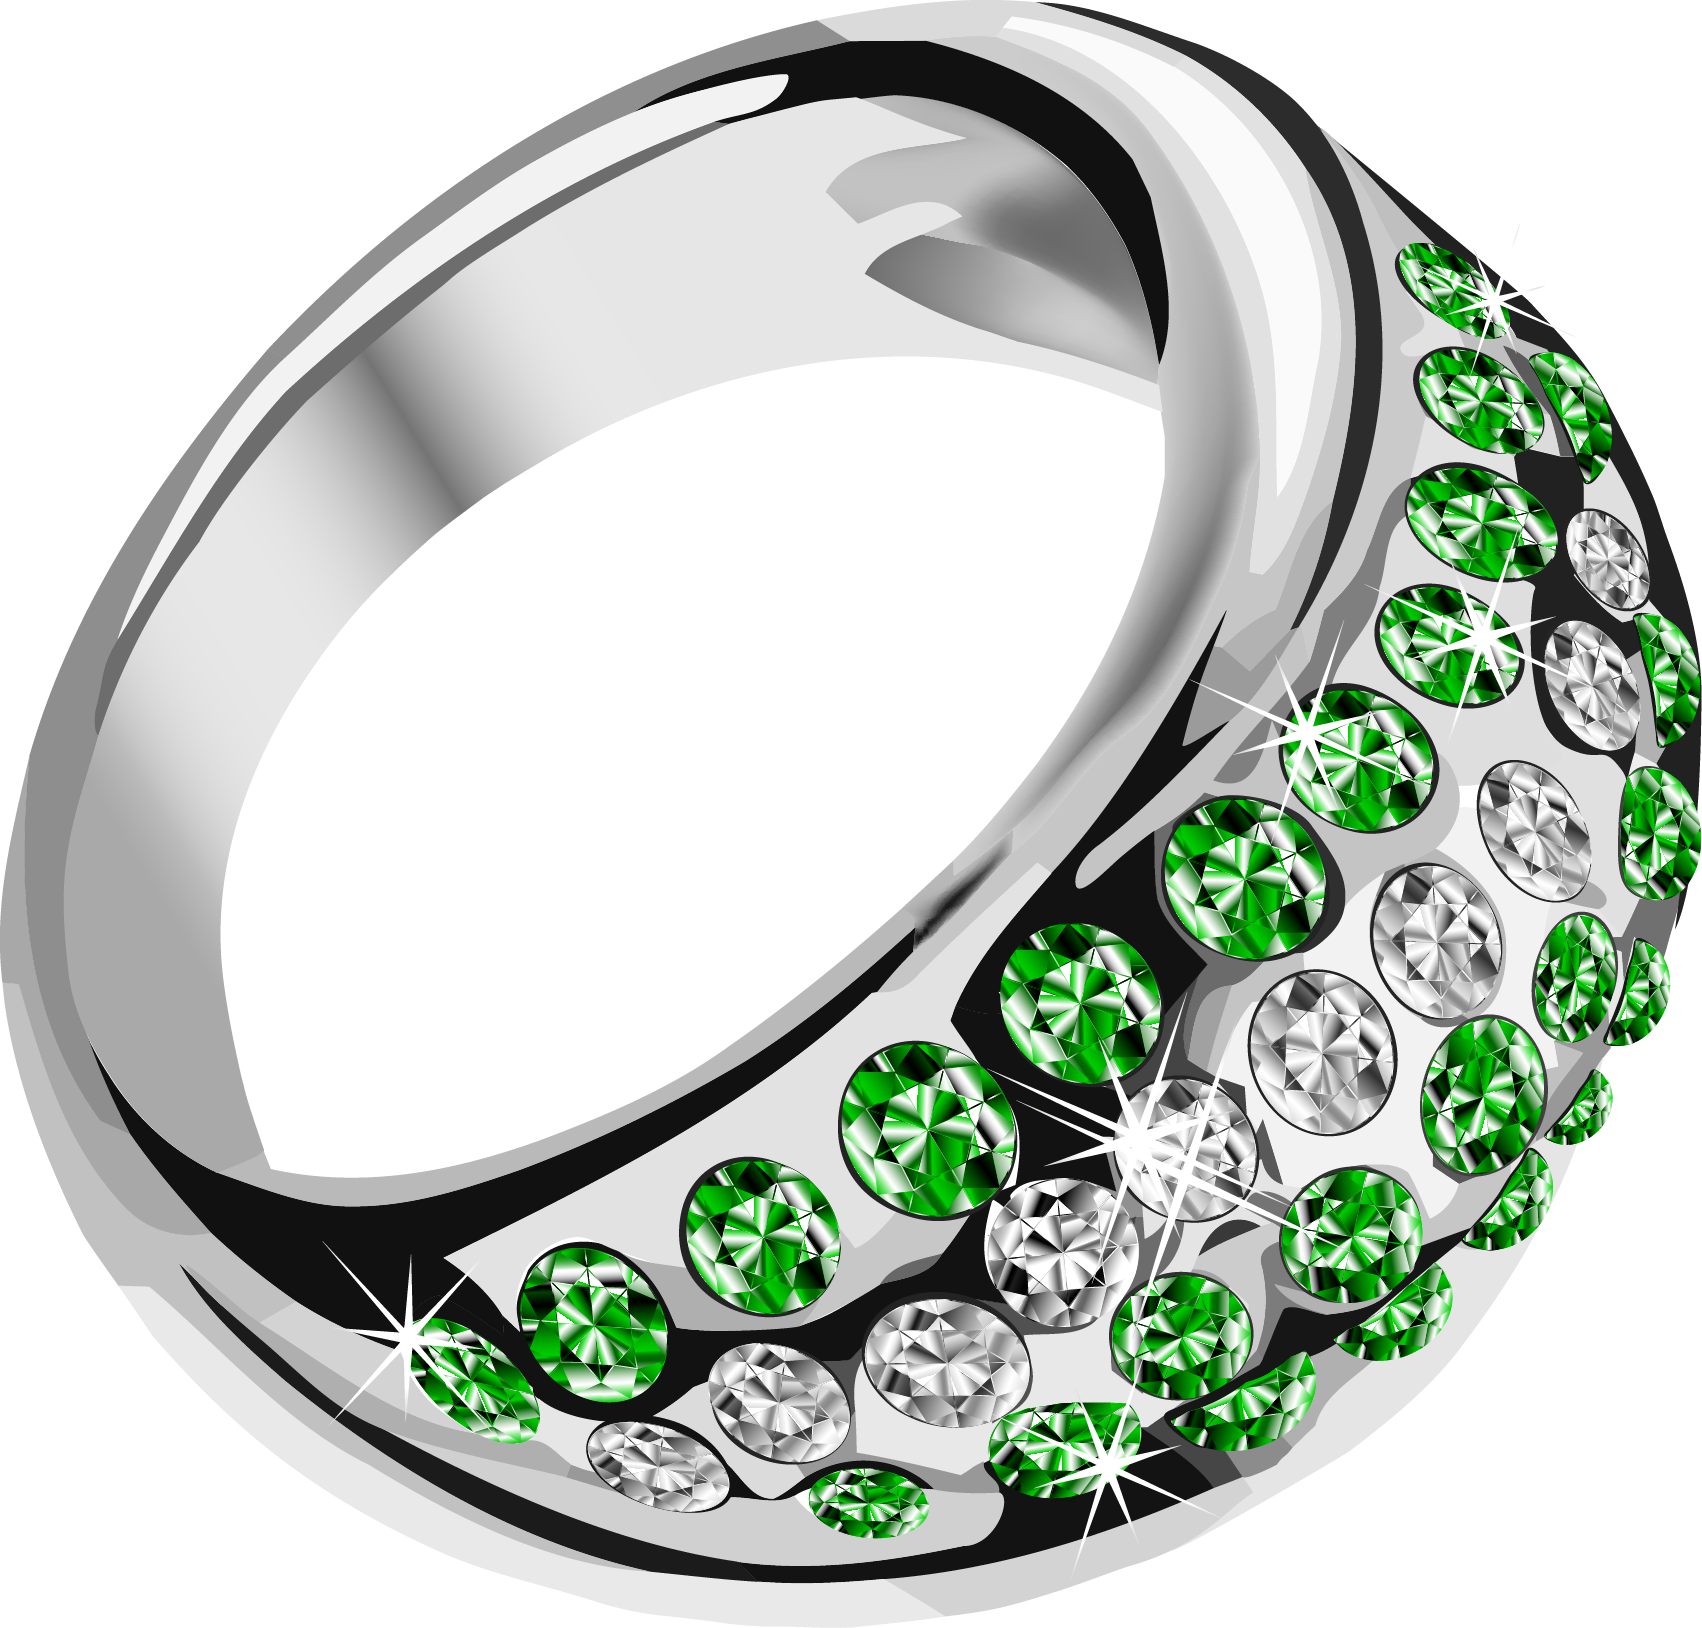 Jewel clipart expensive ring. Jewelry png images free